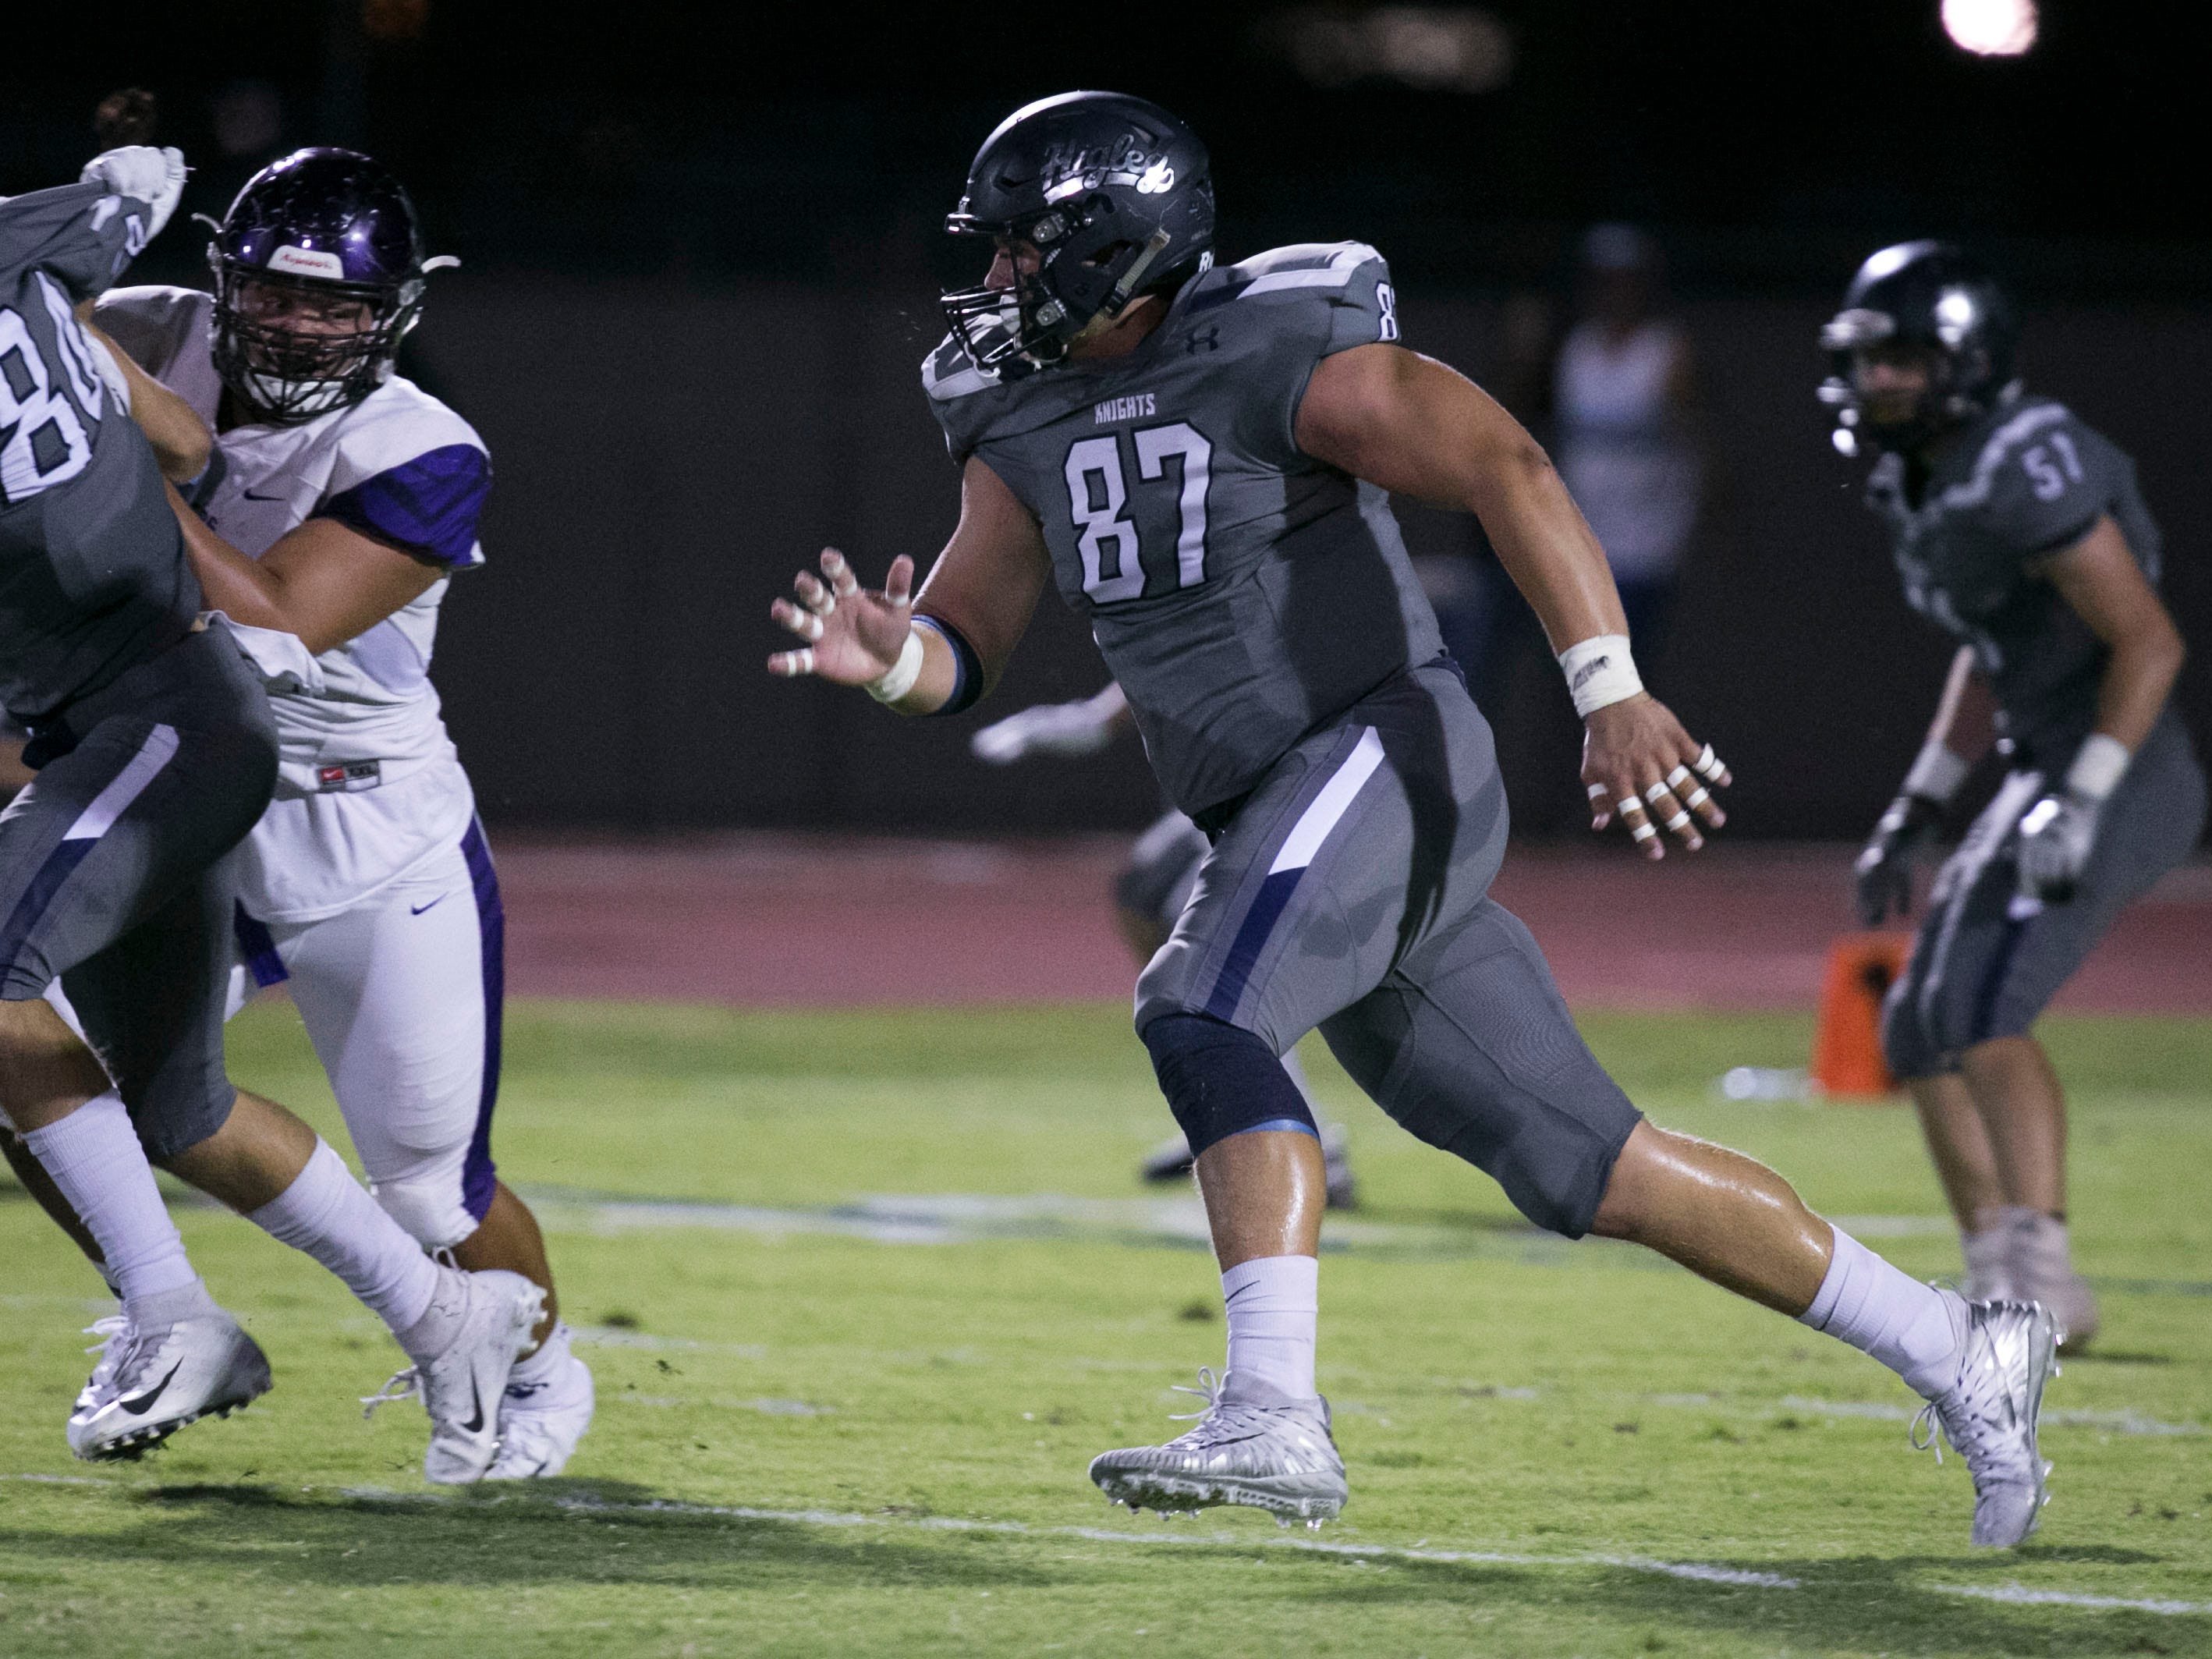 Higley High defensive lineman Ty Robinson pursues  during the first quarter of the high school football game against Millennium High at Higley High in Gilbert on Friday evening, September 14, 2018.